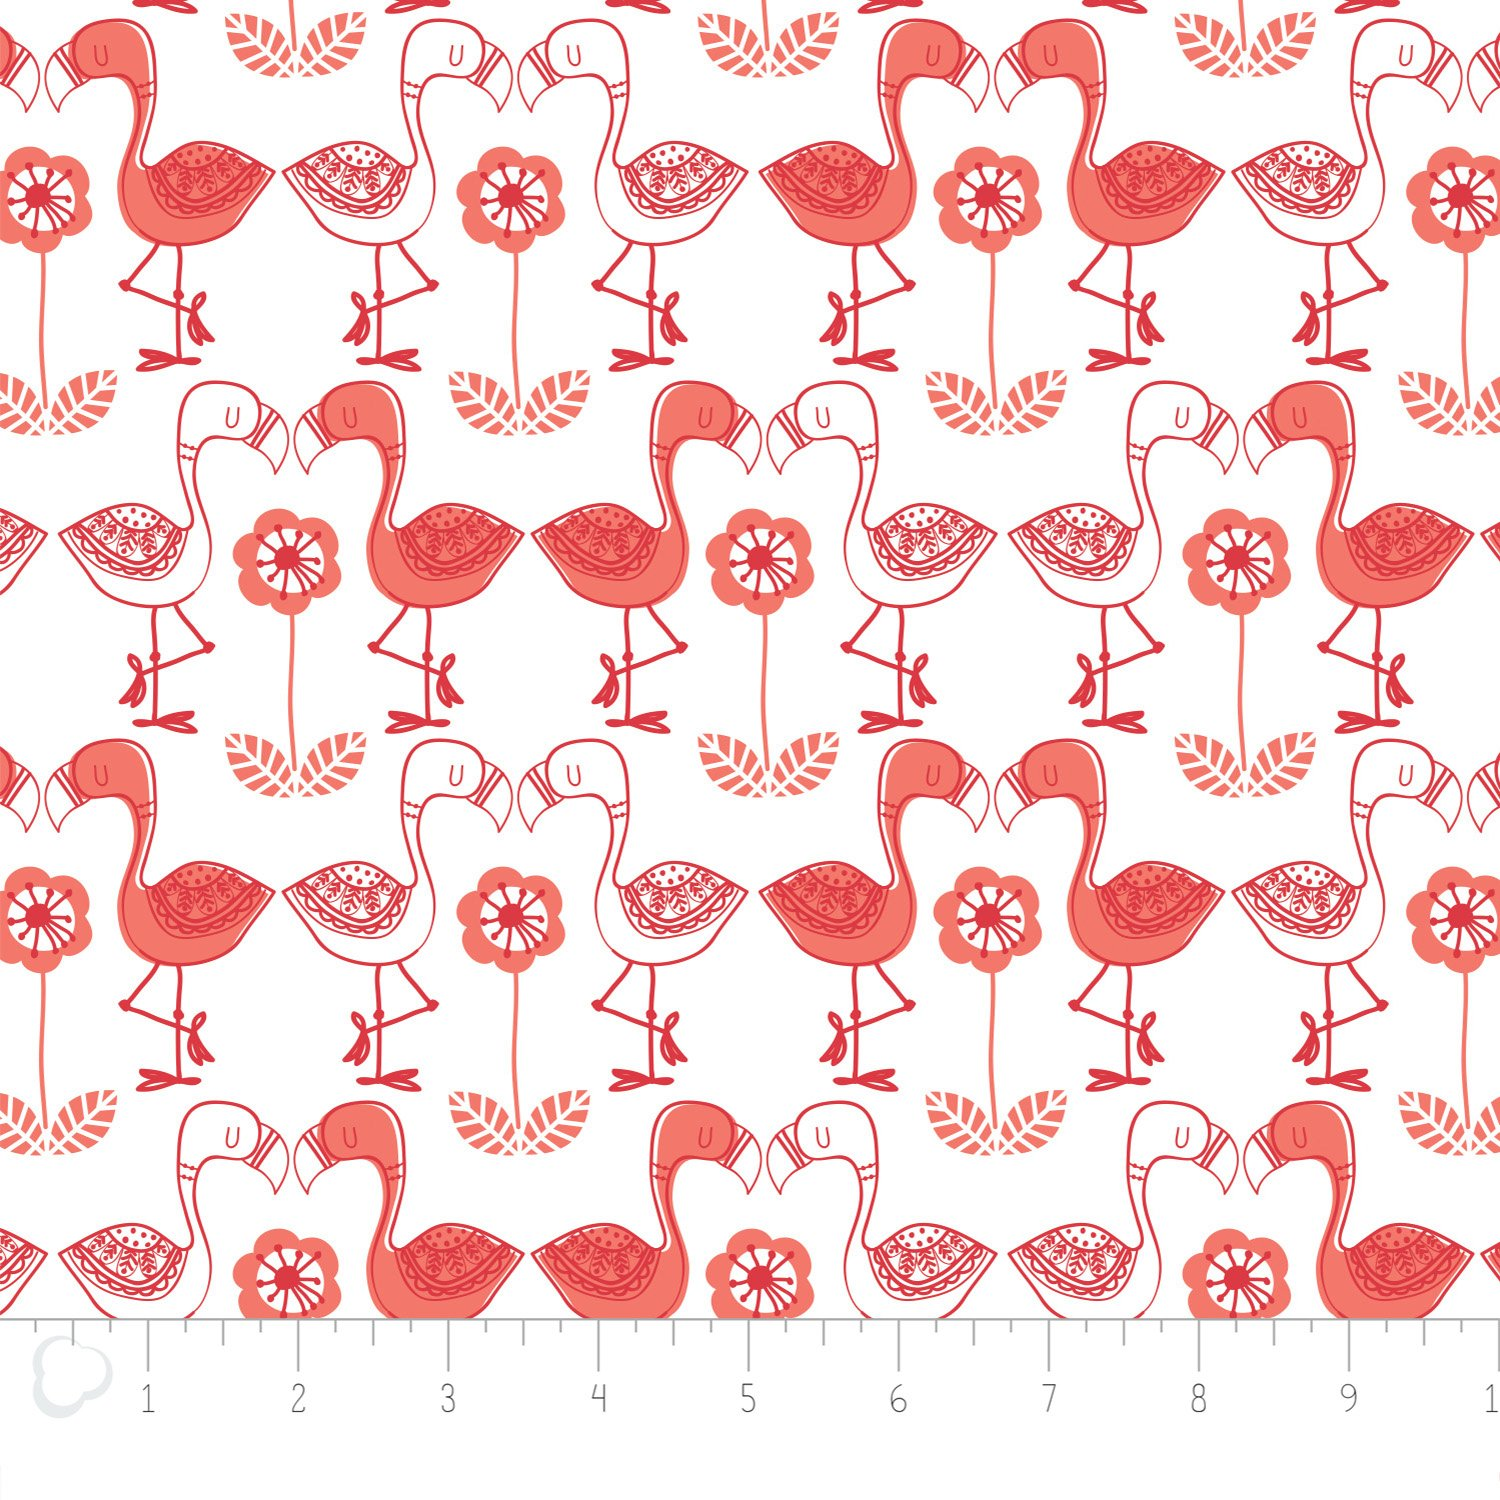 Camelot Fabrics - Flamingo Kisses Printed Flannel - White